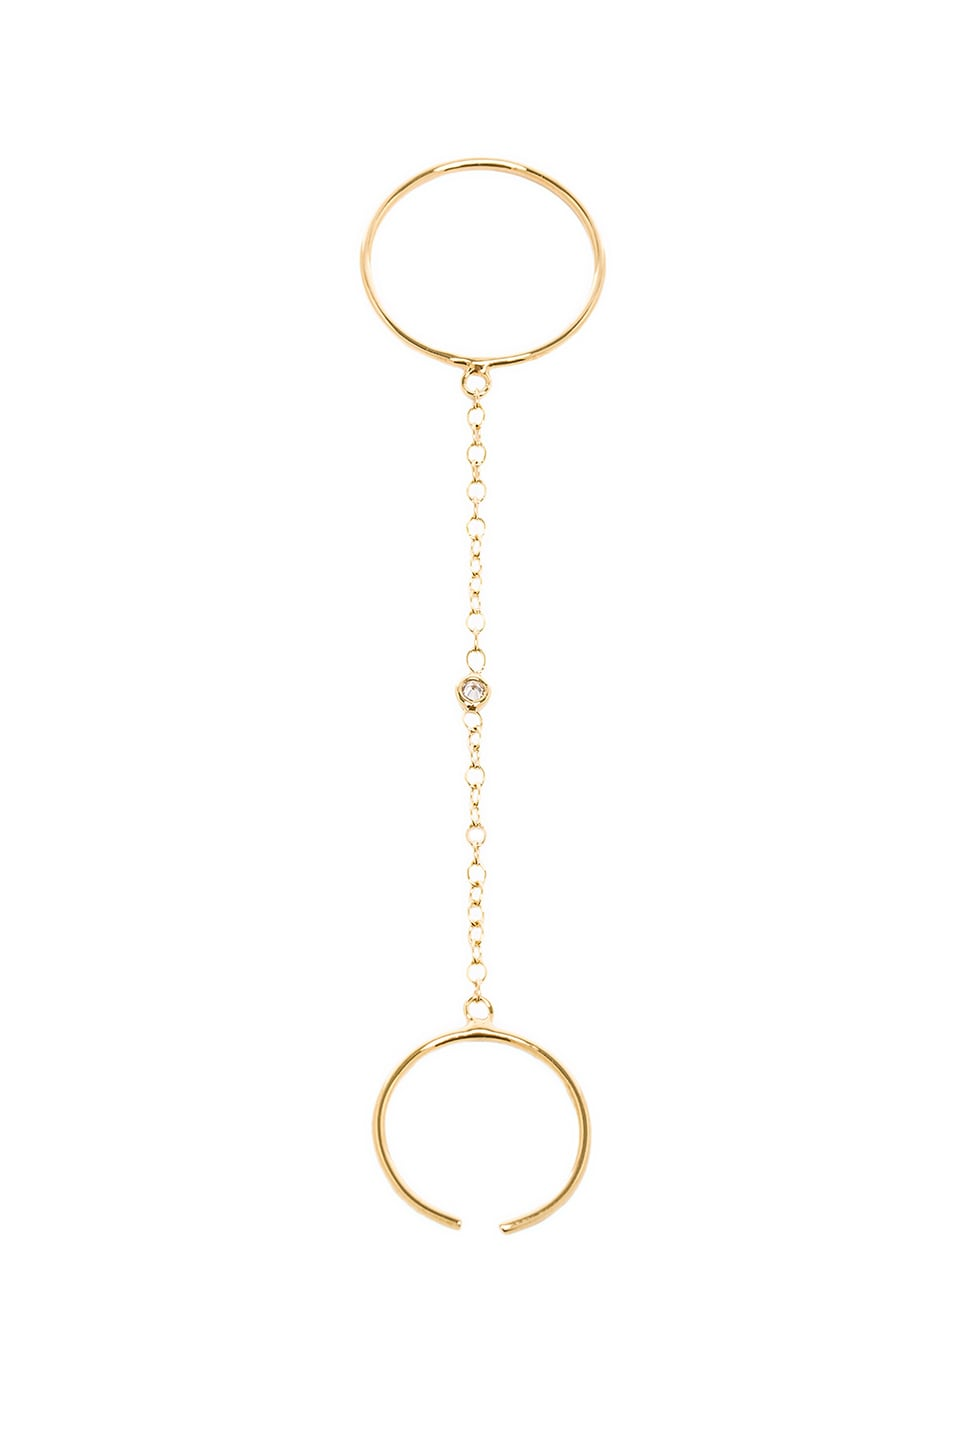 Jacquie Aiche 1cz Smooth Slave Chain Ring in Gold